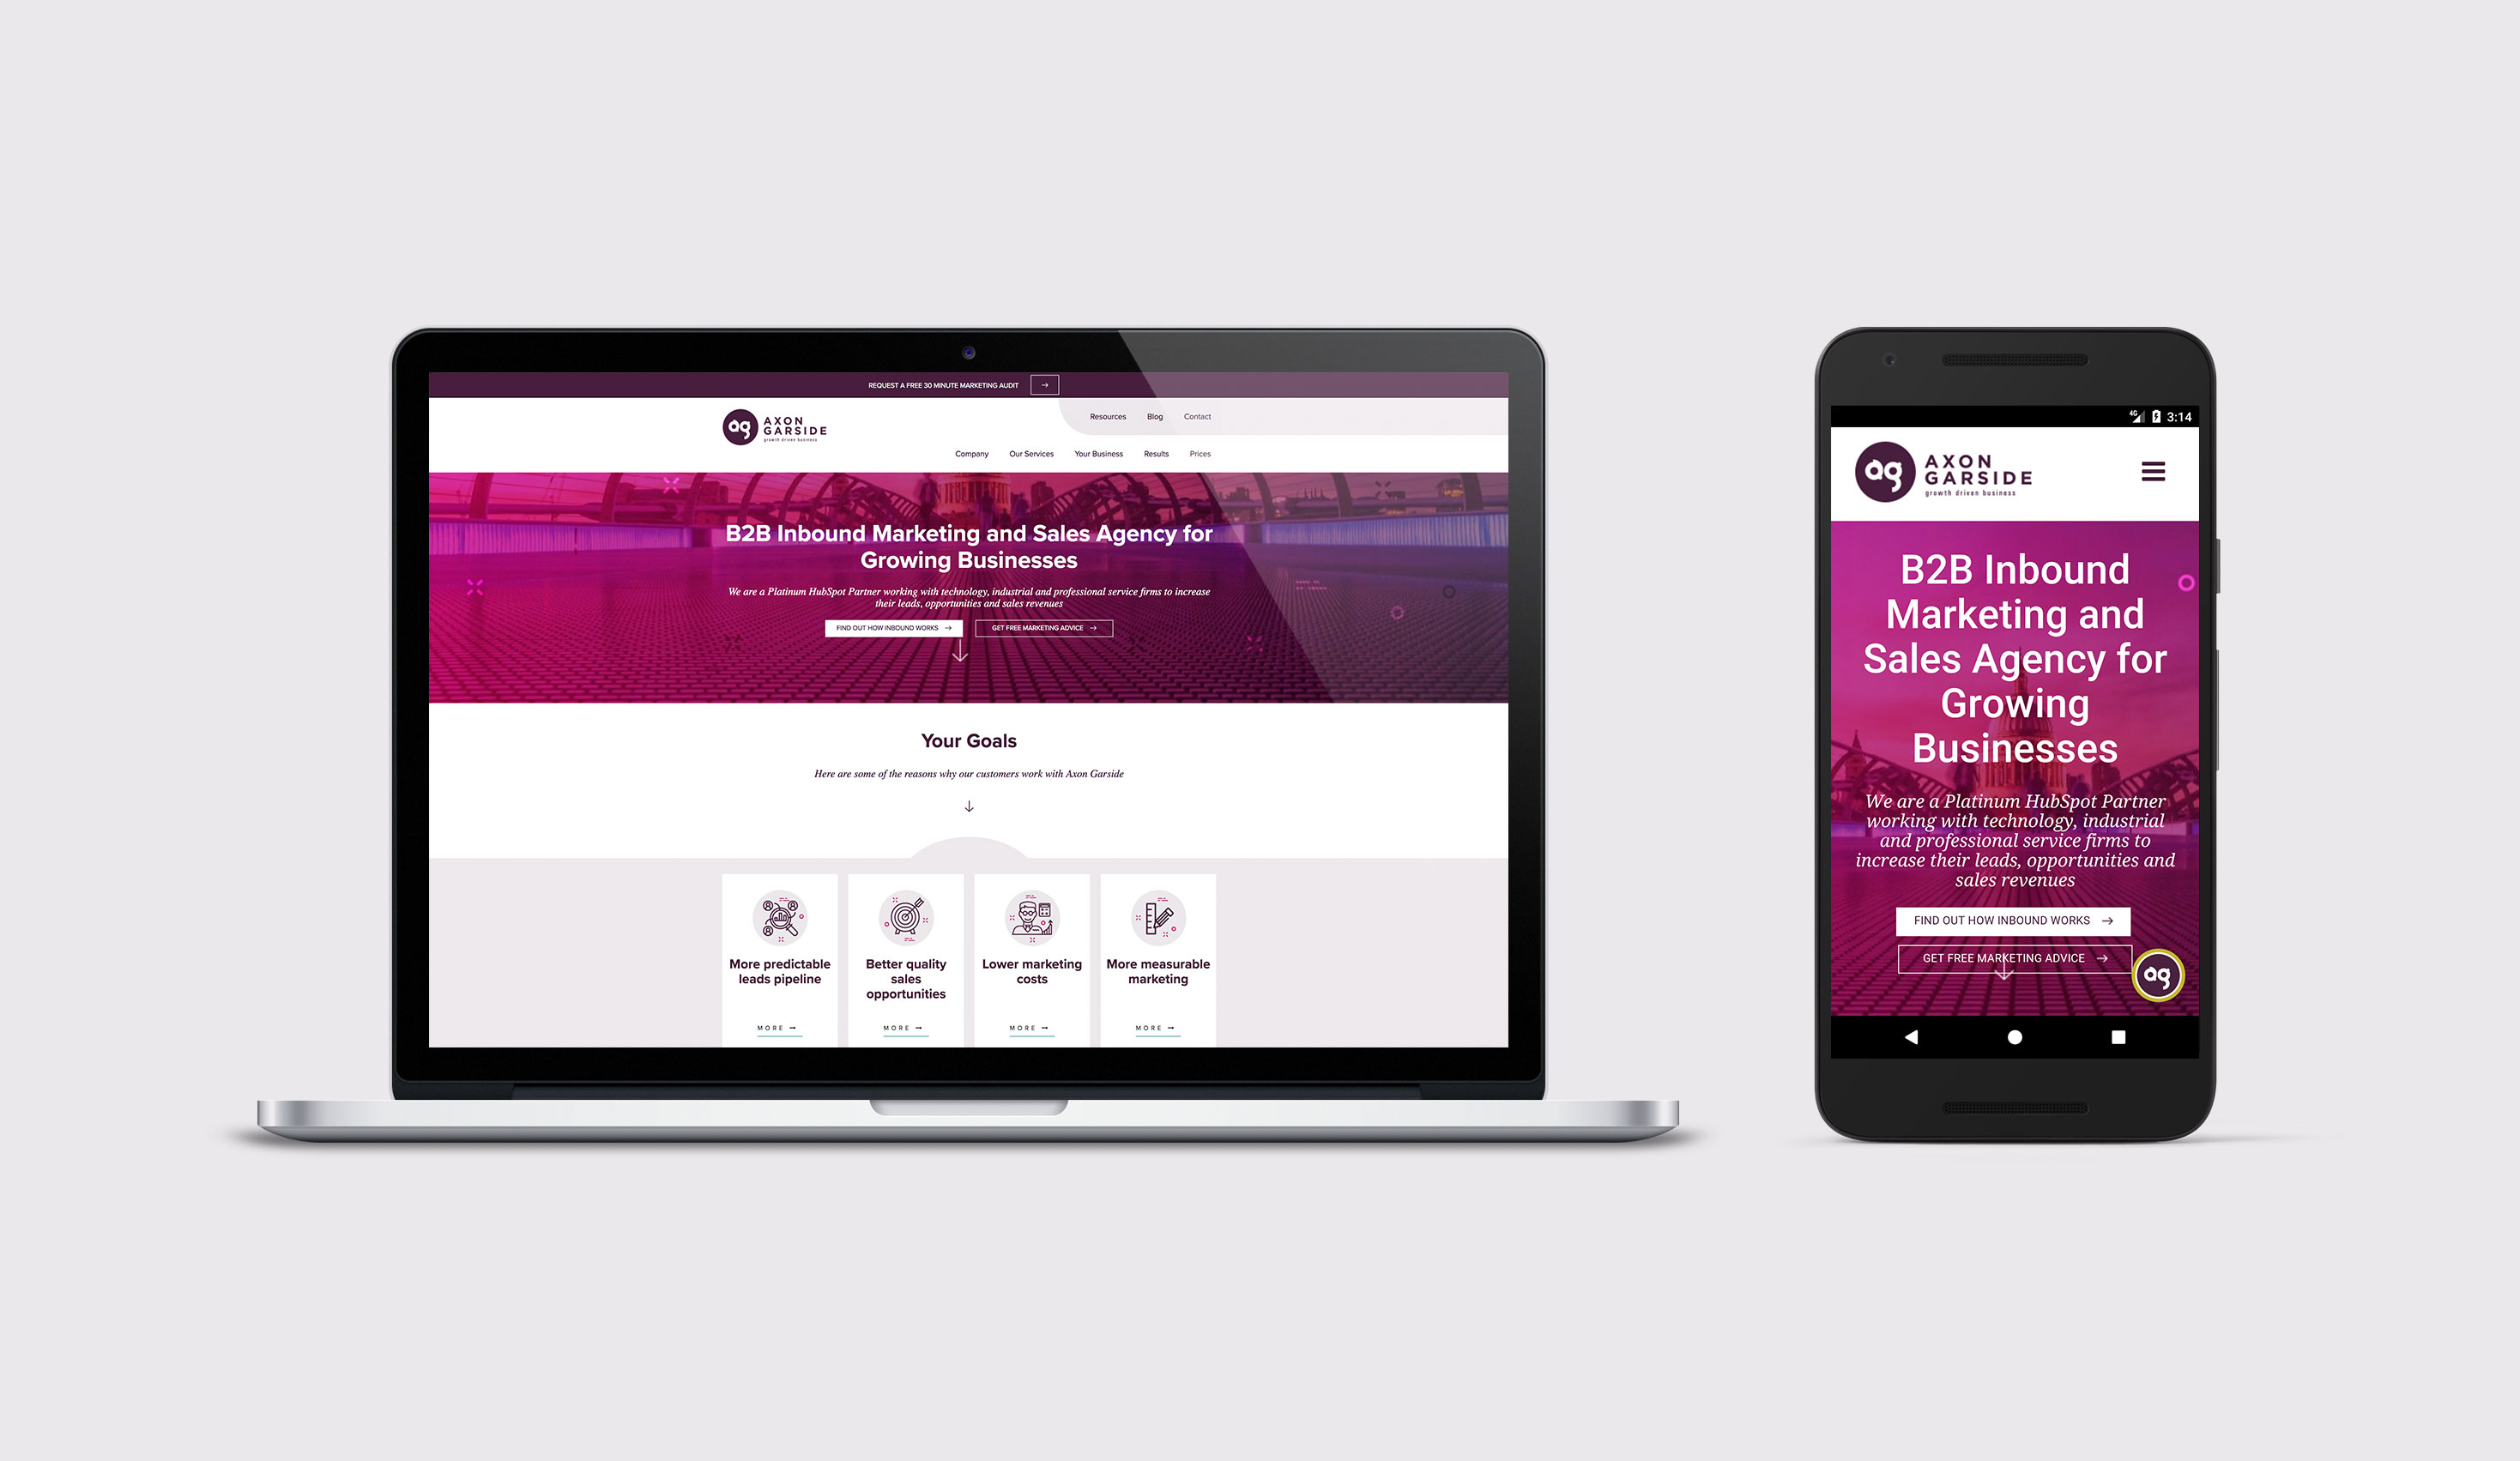 Example of a responsive mobile-optimised website on Axon Garside